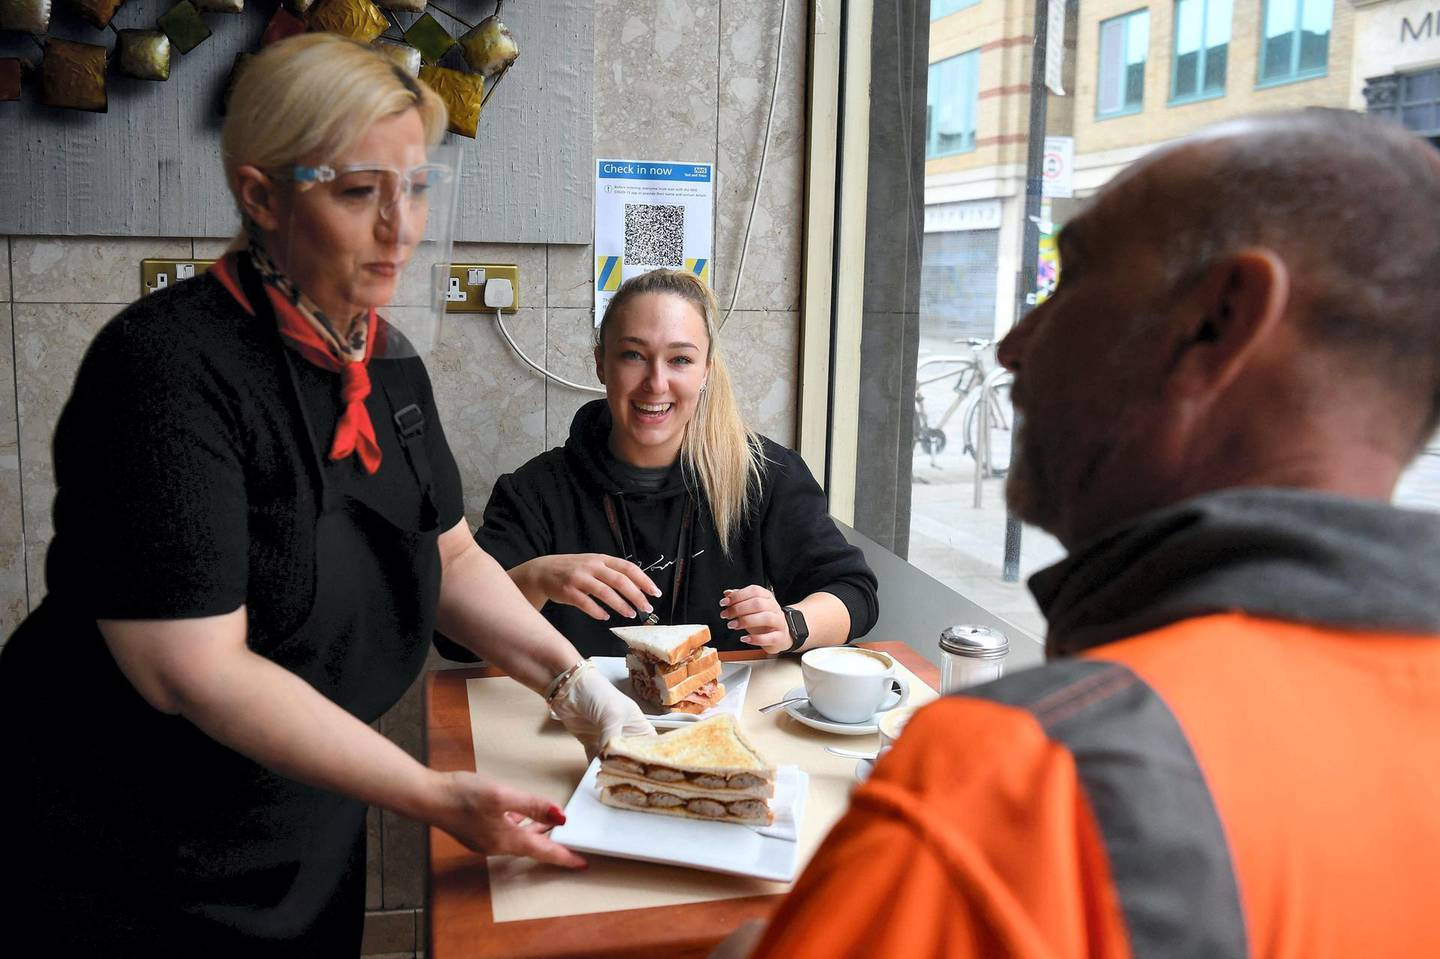 A worker places a customer's breakfast order of a sausage sandwich at a table inside Barbarella's cafe in London as Covid-19 lockdown restrictions ease across the country on May 17, 2021. / AFP / DANIEL LEAL-OLIVAS